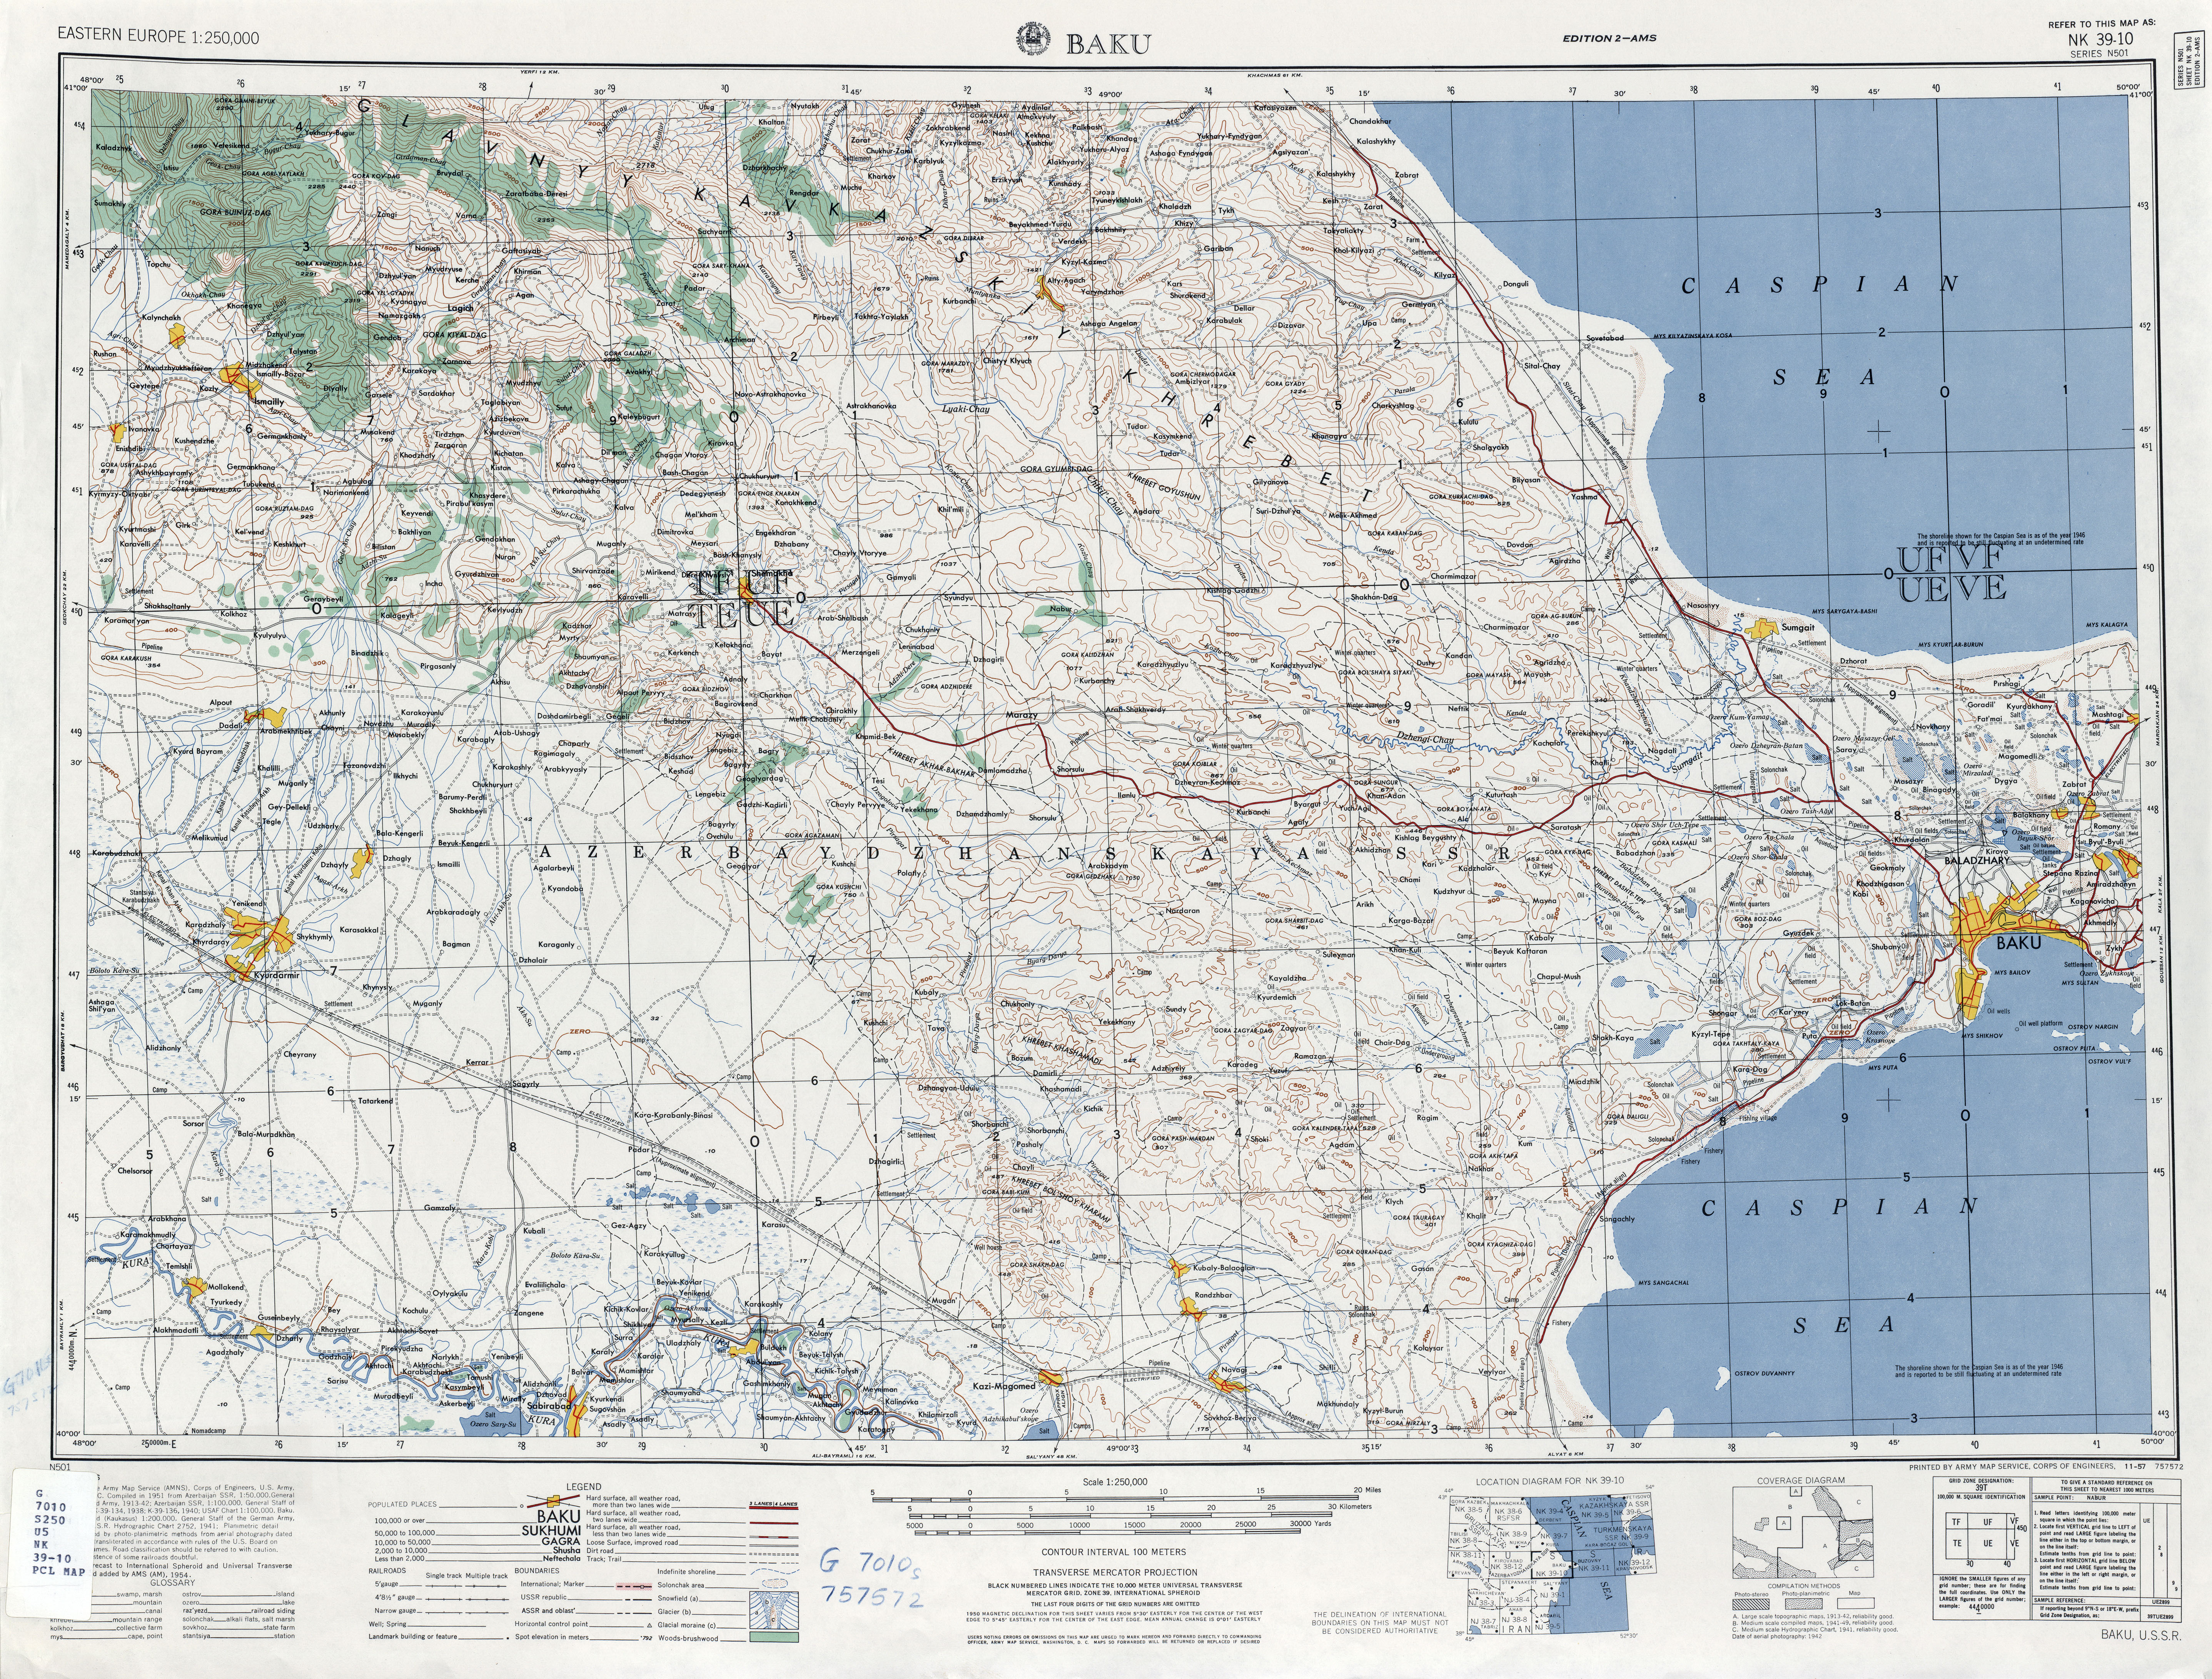 Eastern europe ams topographic maps perry castaeda map nk 39 10 baku gumiabroncs Choice Image